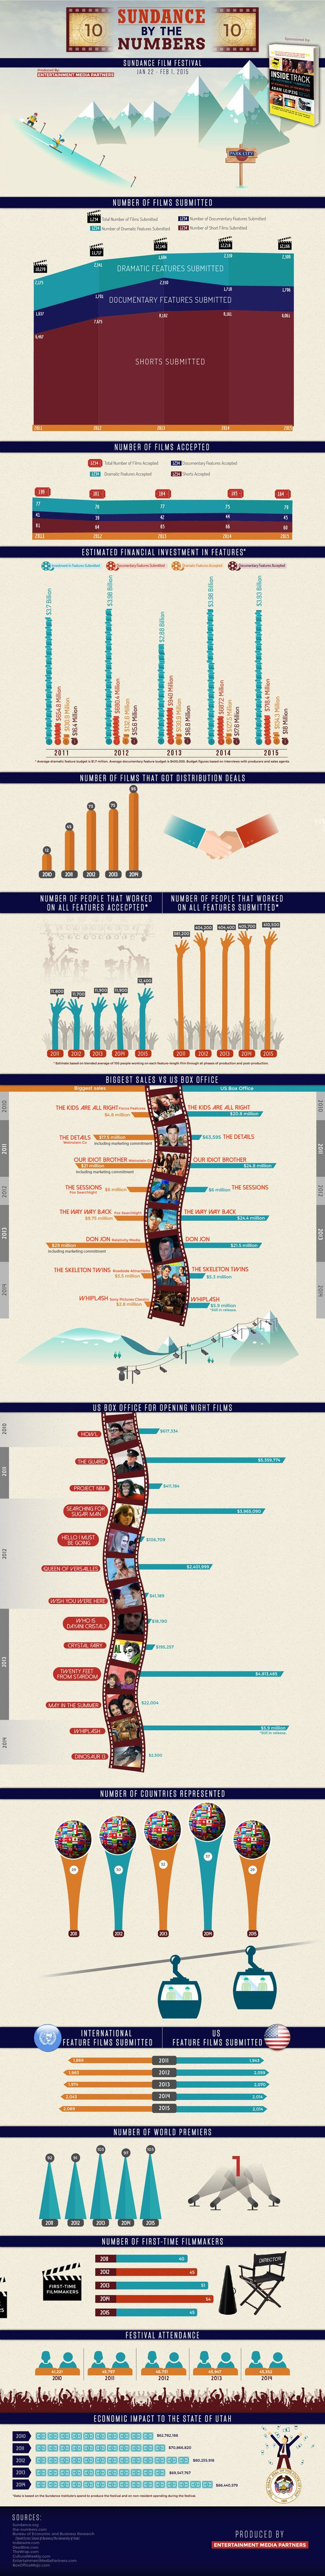 Sundance 2015 Infographic Produced by Entertainment Media Partners for Cultural Weekly.